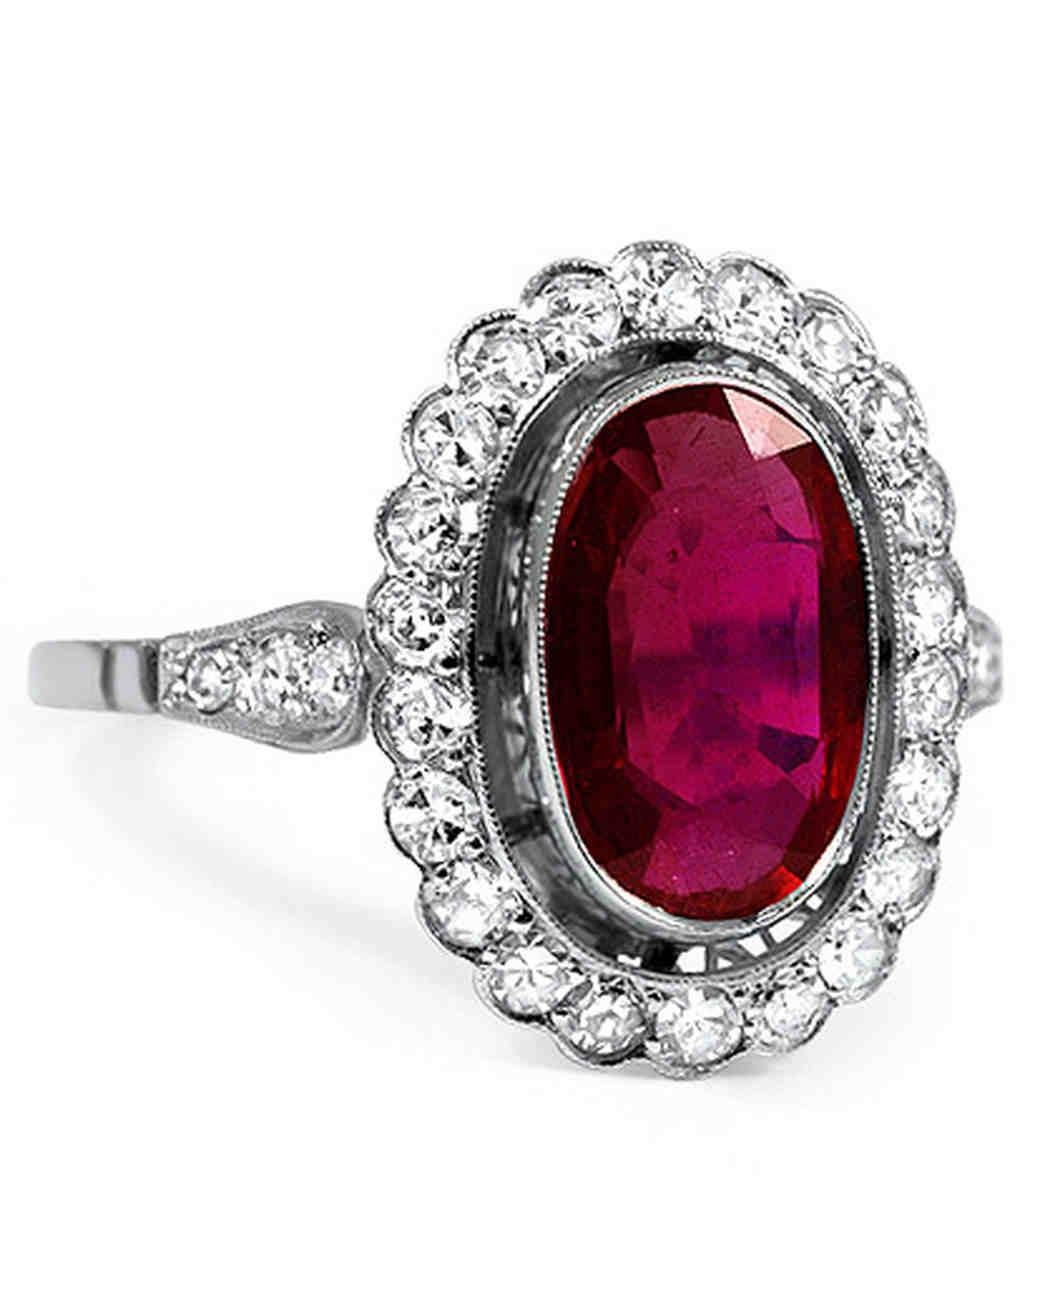 Ruby Wedding Rings: The Symbol Of Love | Home Design Articles Within Most Current Ruby Anniversary Rings (View 10 of 25)